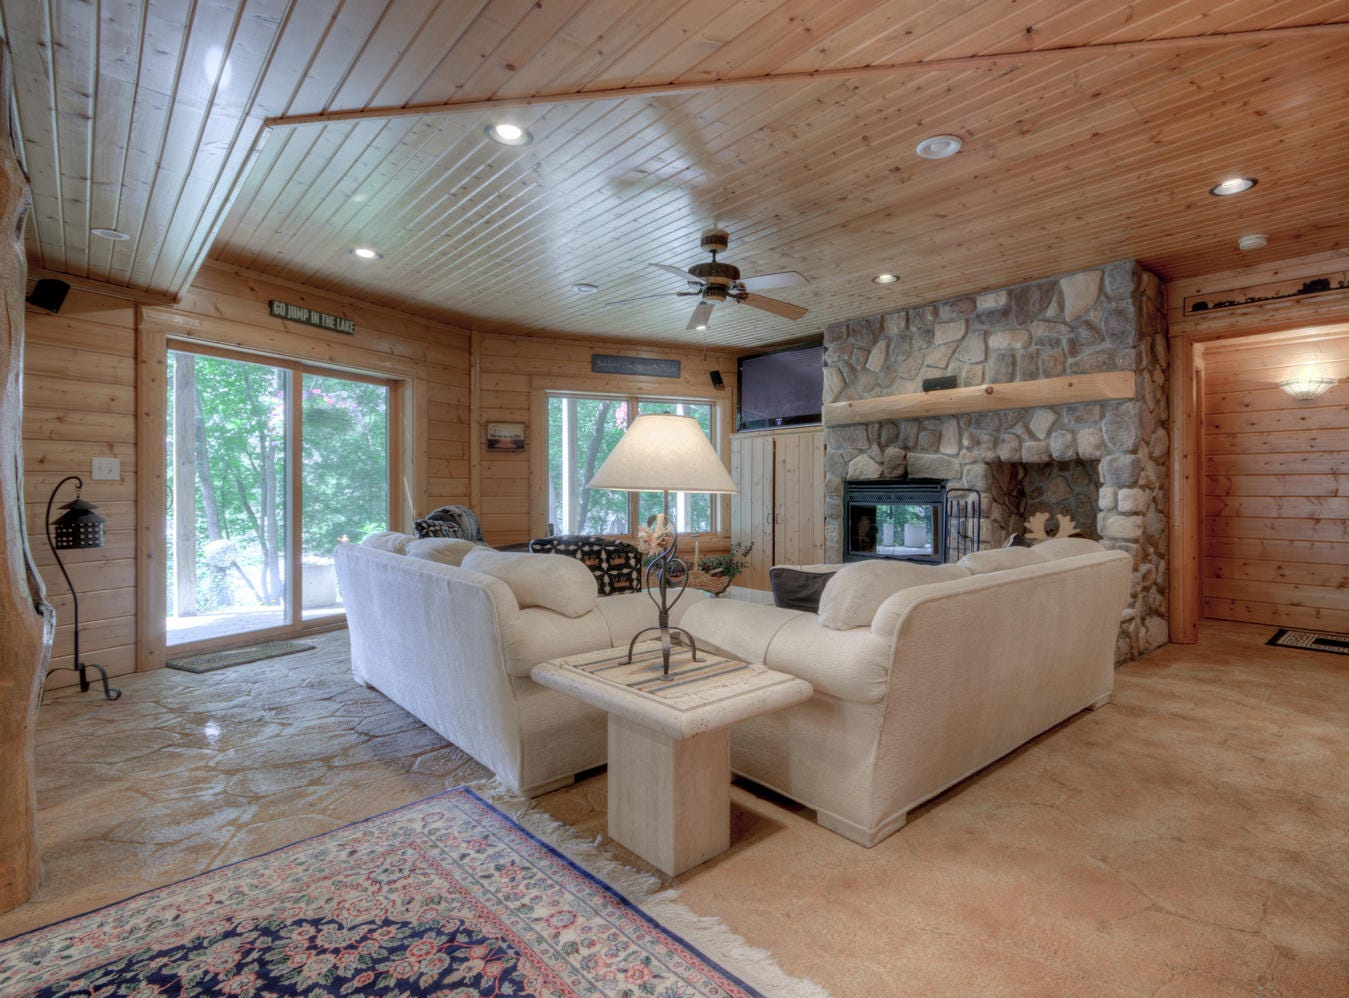 The lower level includes a family room complete with a stone fireplace and a sliding glass door to access the lake.